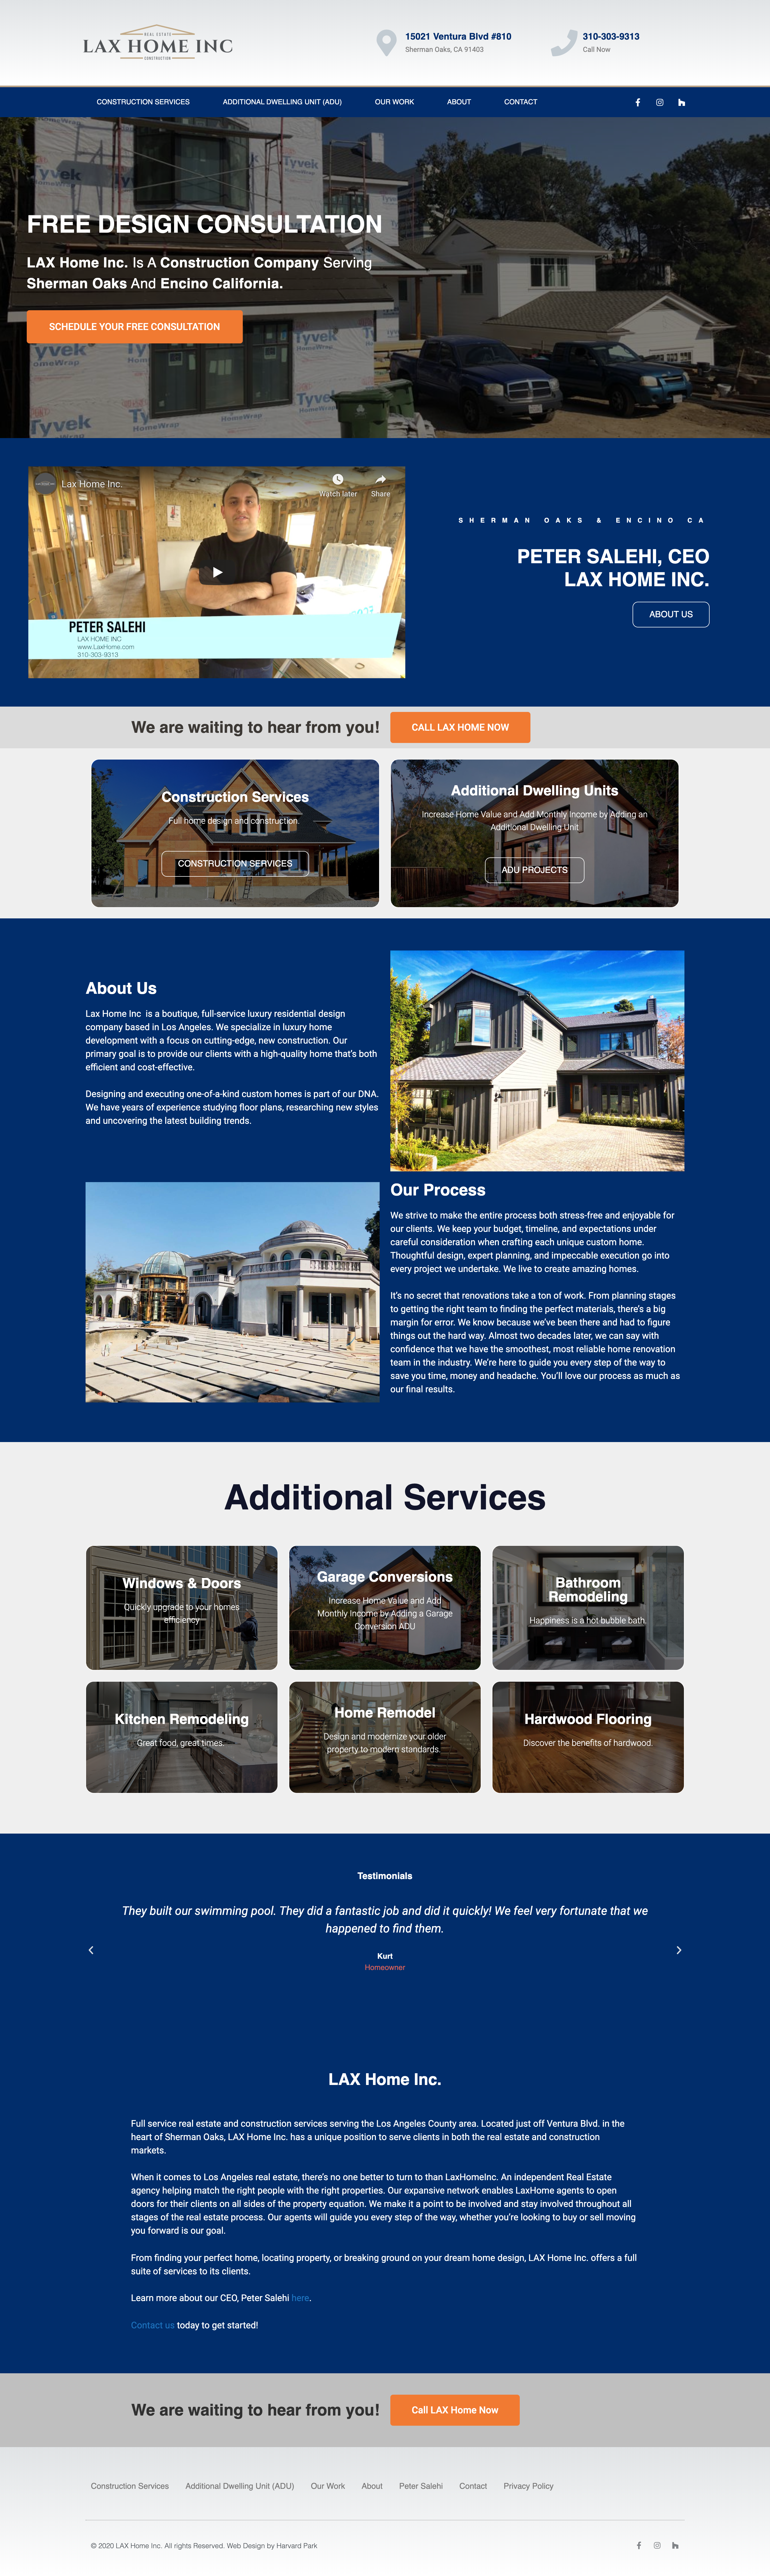 LAX Home Real Estate Website Design